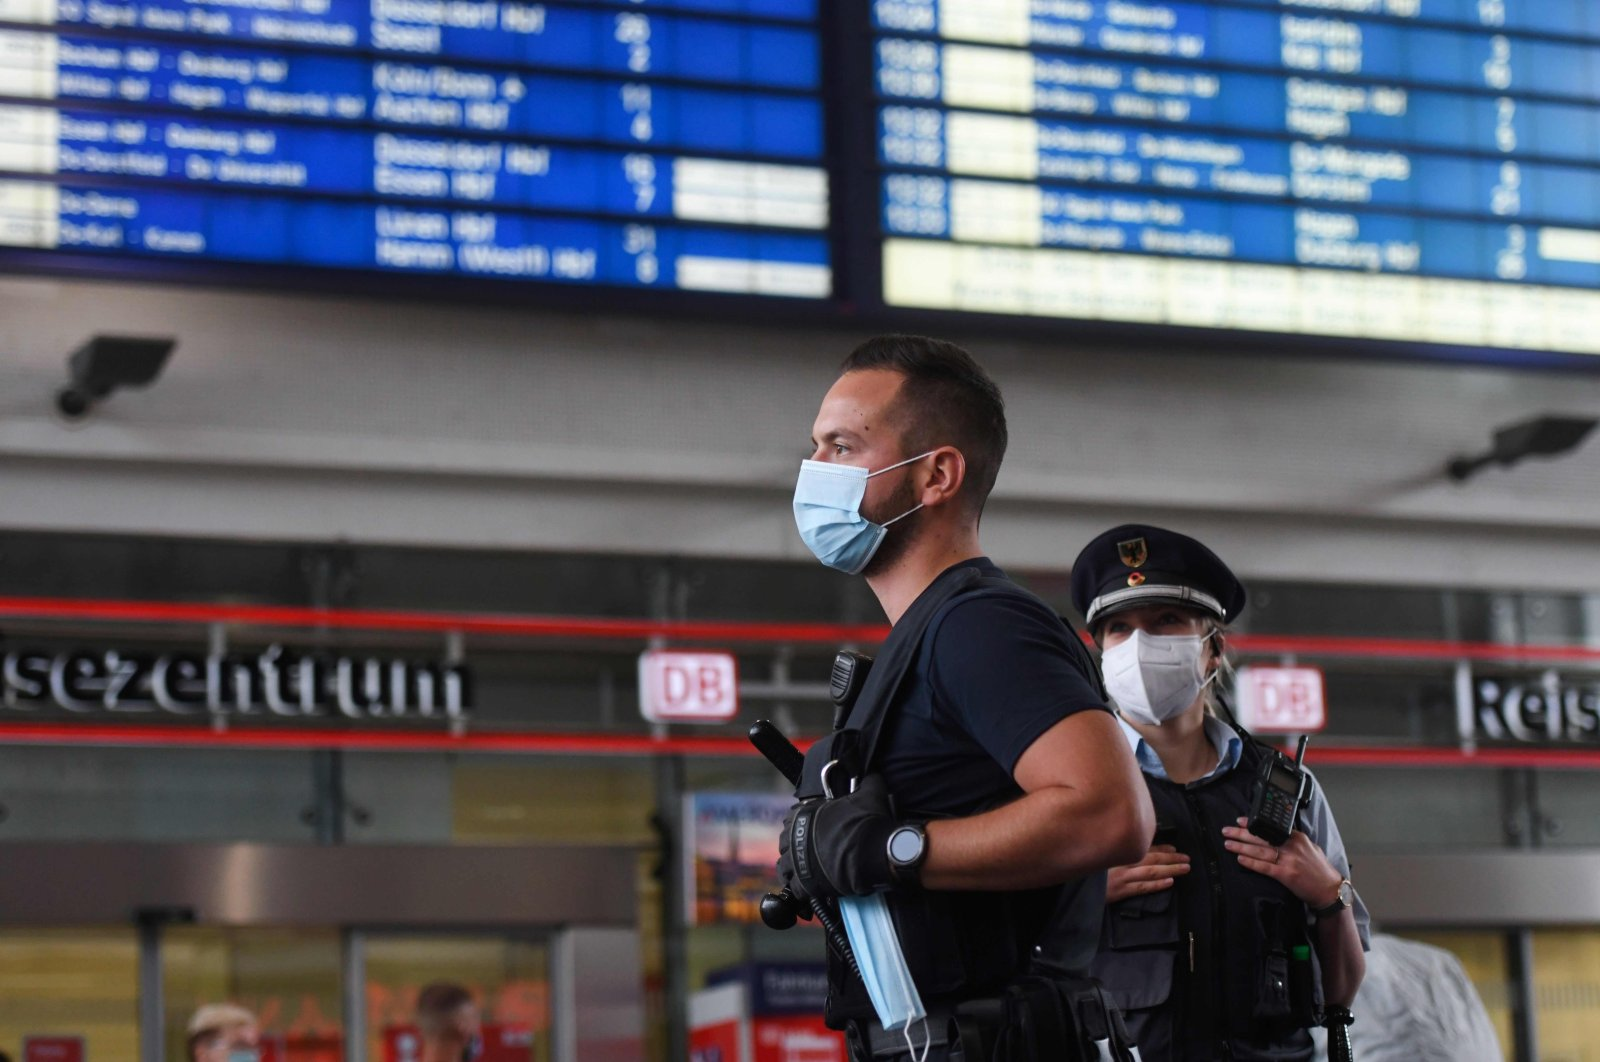 Employees of the public order office and the federal police patrol to control that commuters respect the obligation to wear a mask on August 24, 2020 at the main railway station in Dortmund, western Germany, amid the new coronavirus pandemic. (AFP Photo)